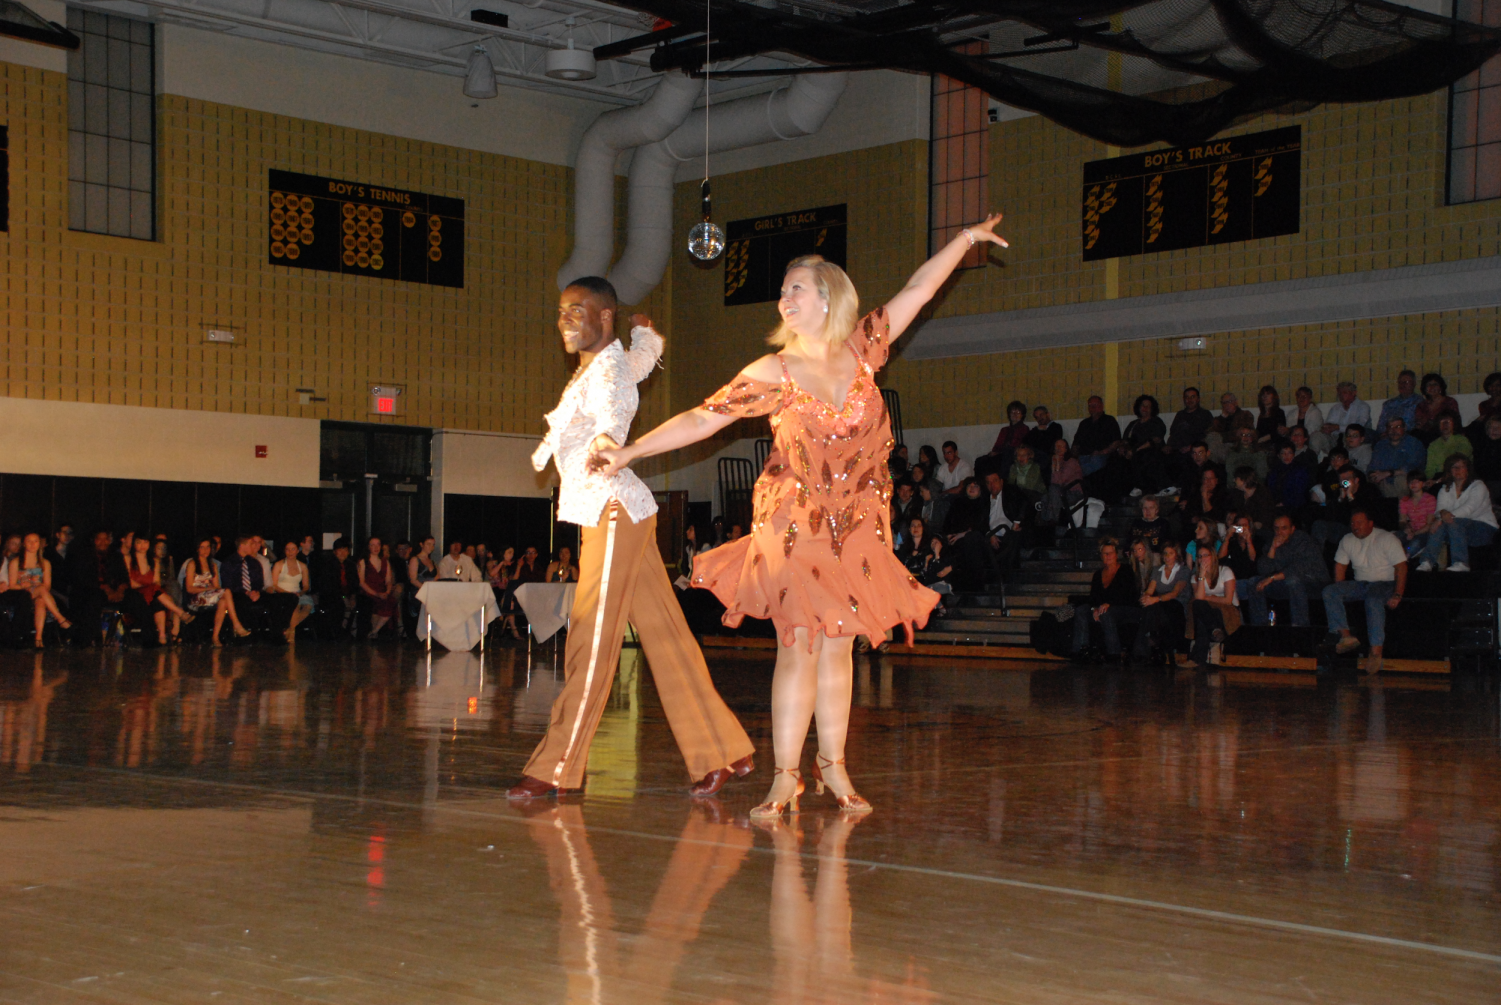 Jean Michel Erole, Ms. Muller's dance teacher and partner, and Ms. Muller perform at Dancing With the Stars